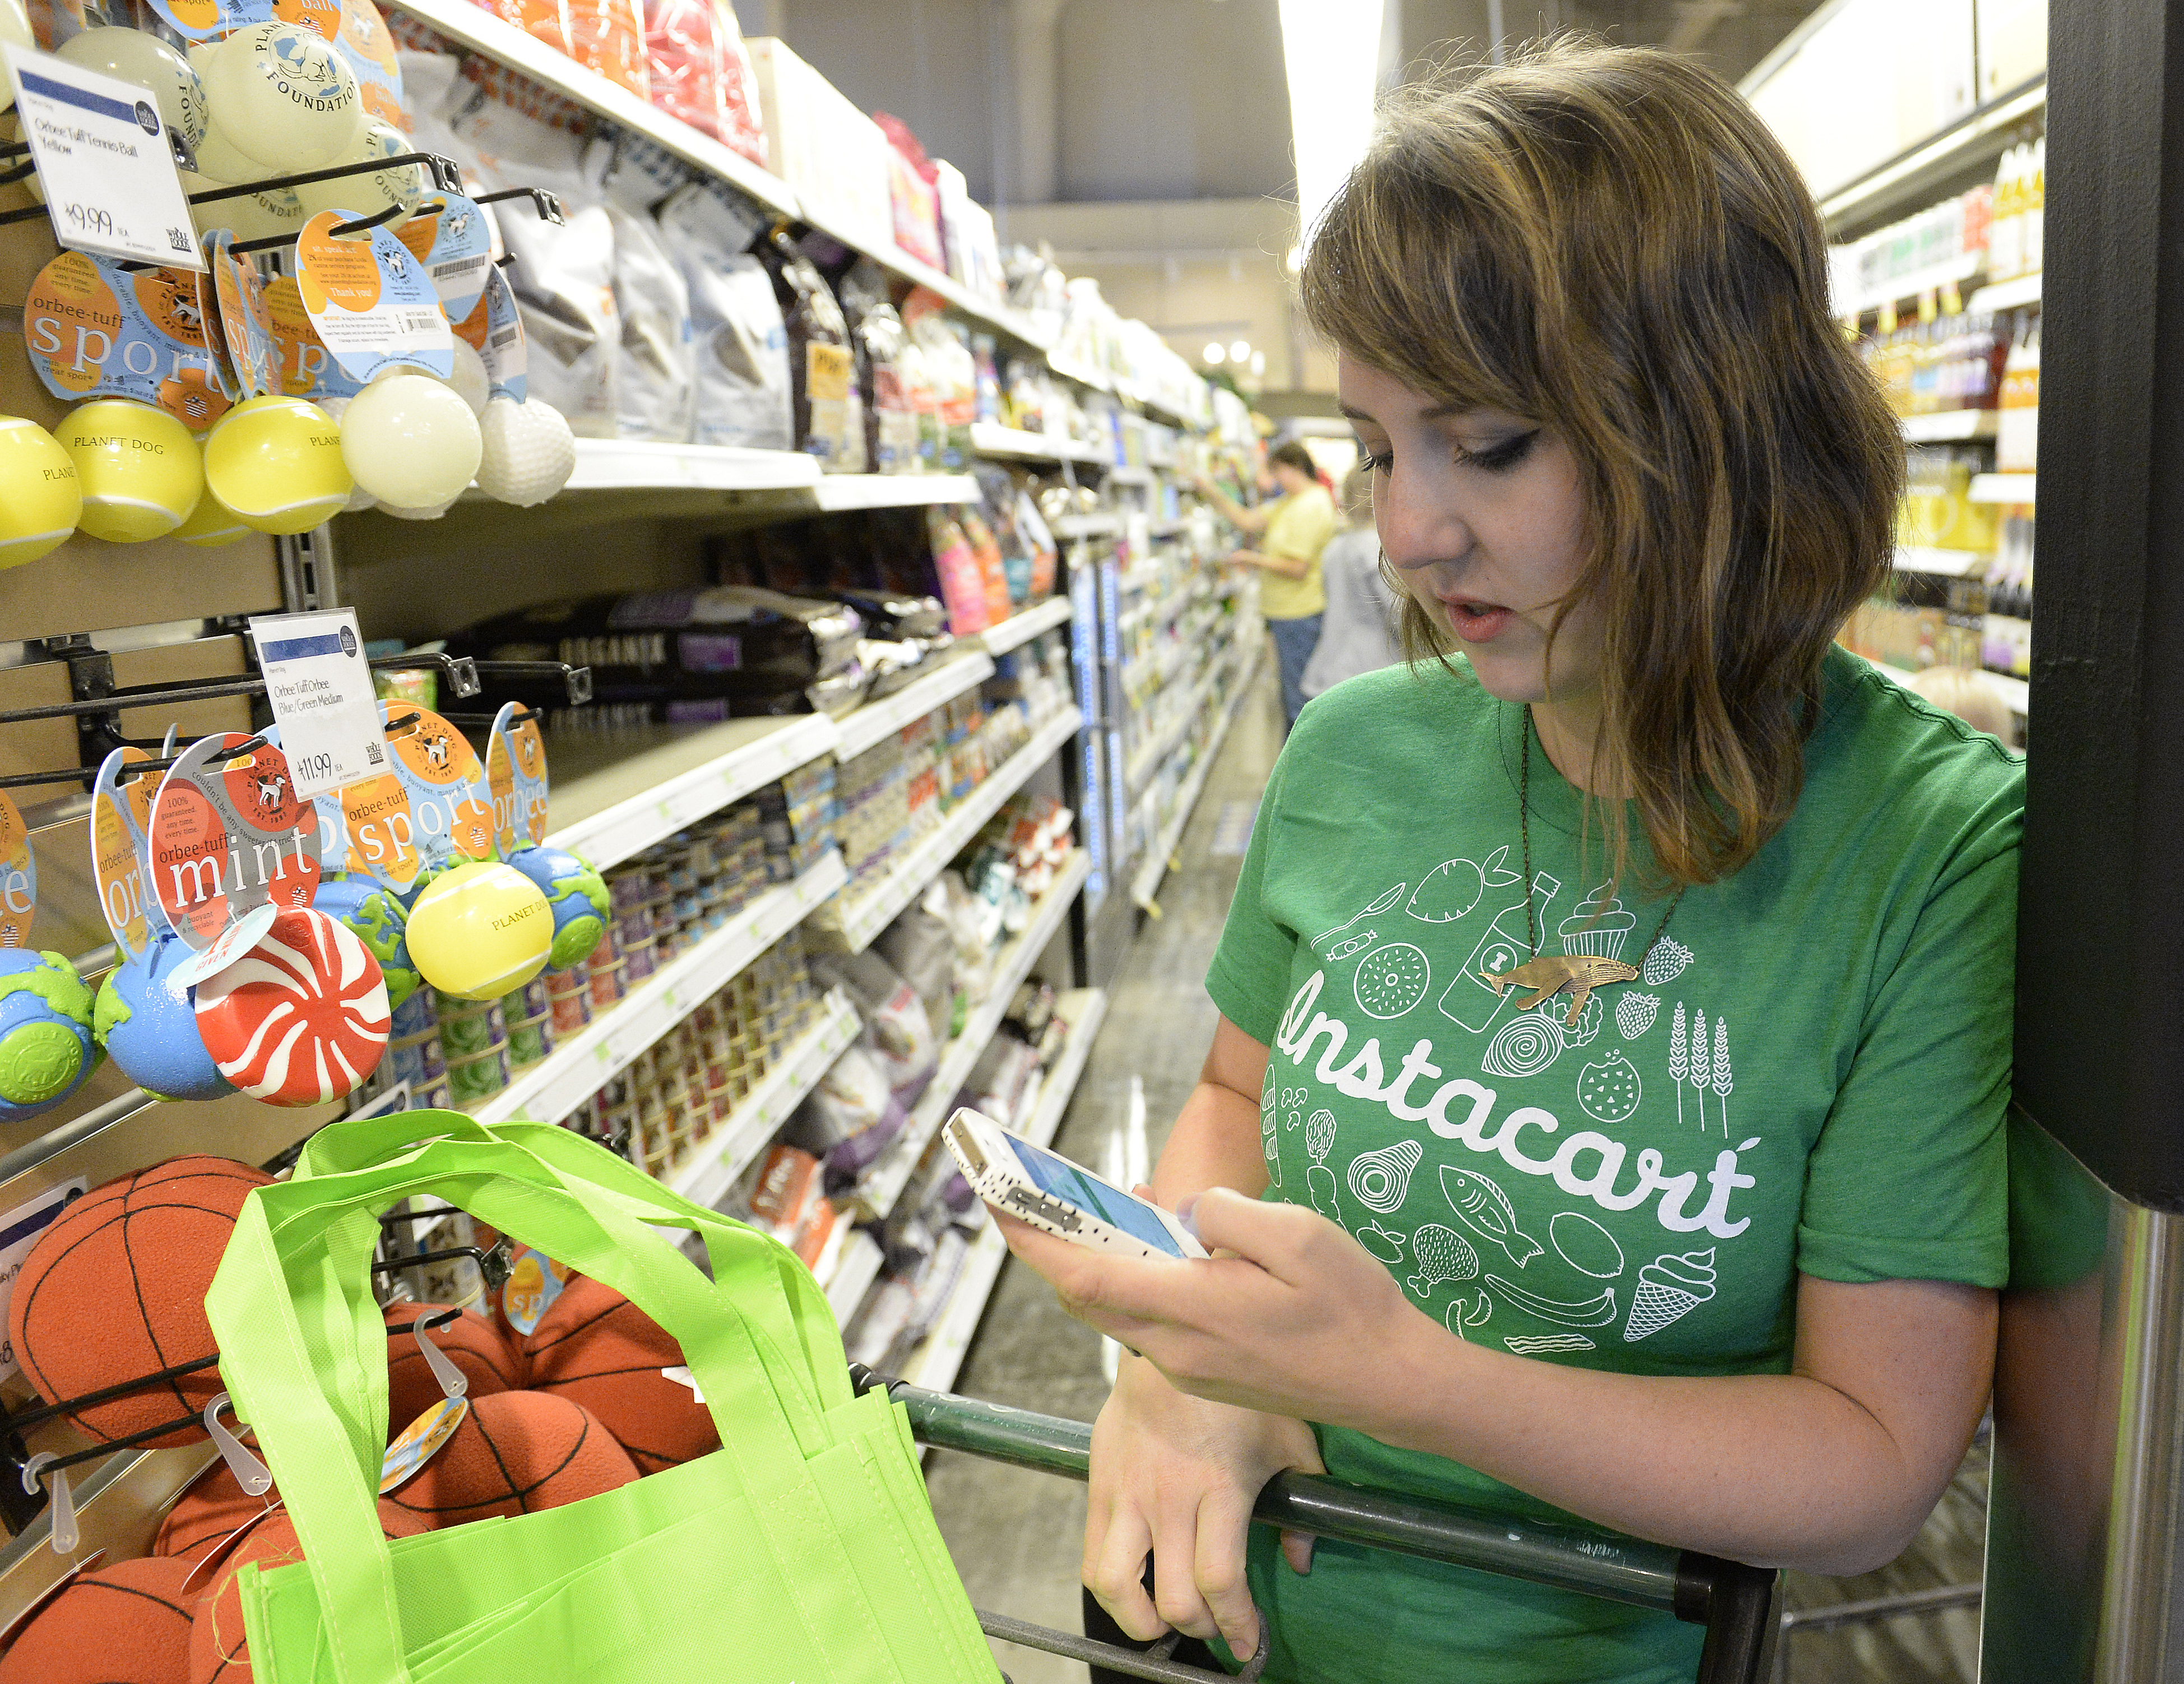 Lawsuit: Instacart 'personal shoppers' should be employees | Fortune